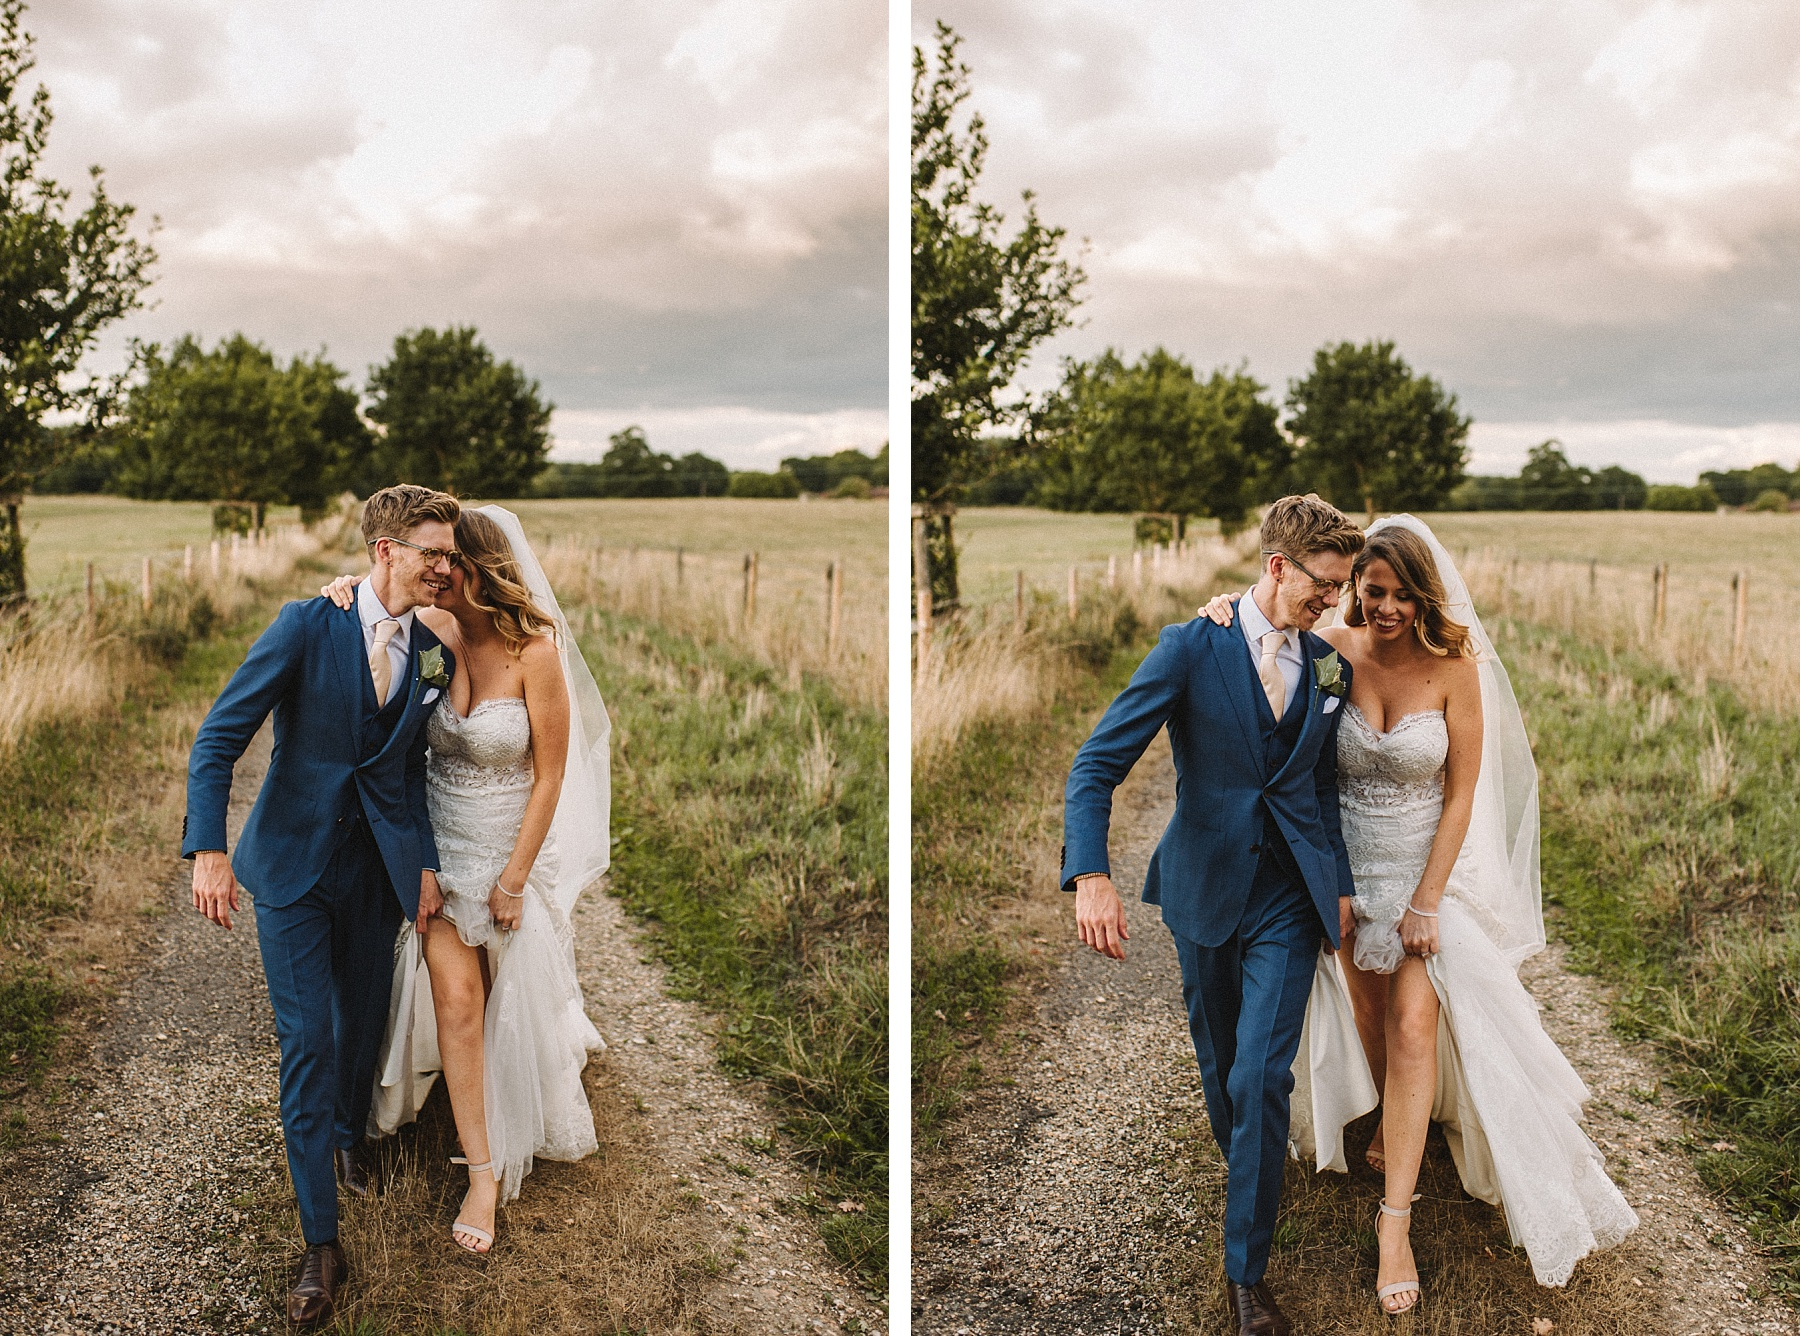 colour wedding photography at The Elvetham